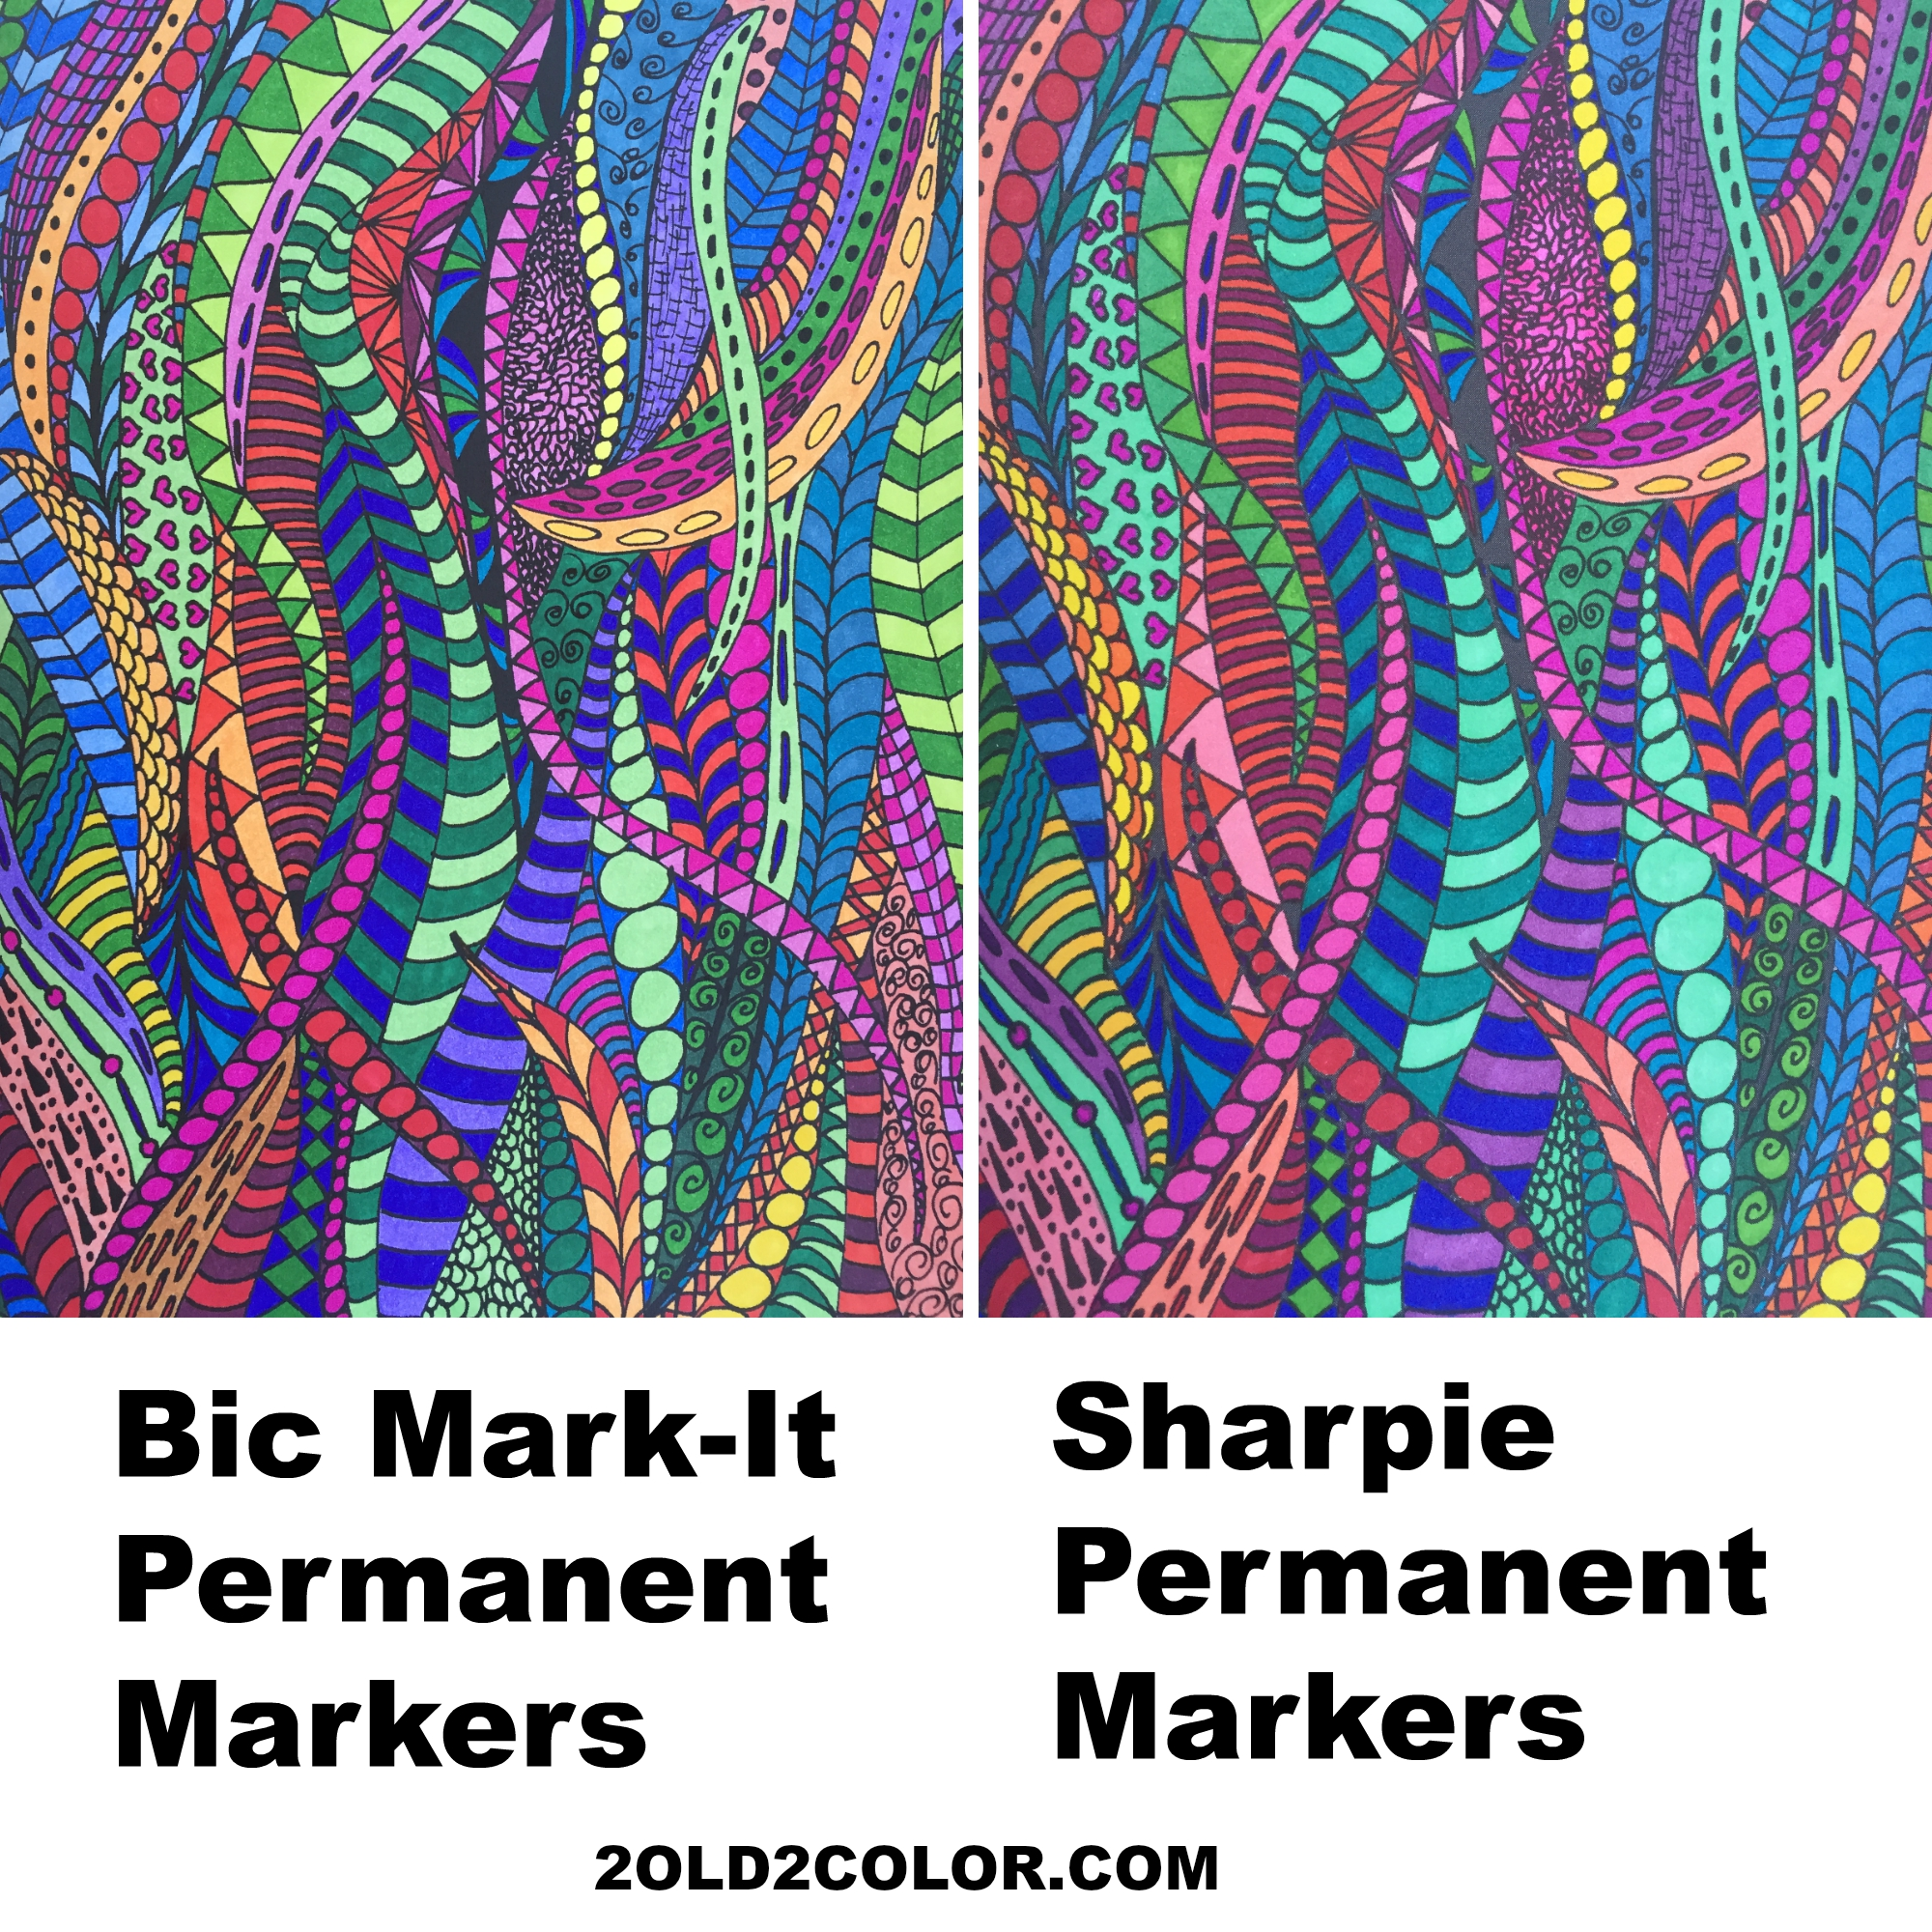 bic mark it markers and sharpie markers comparison 2 old 2 color